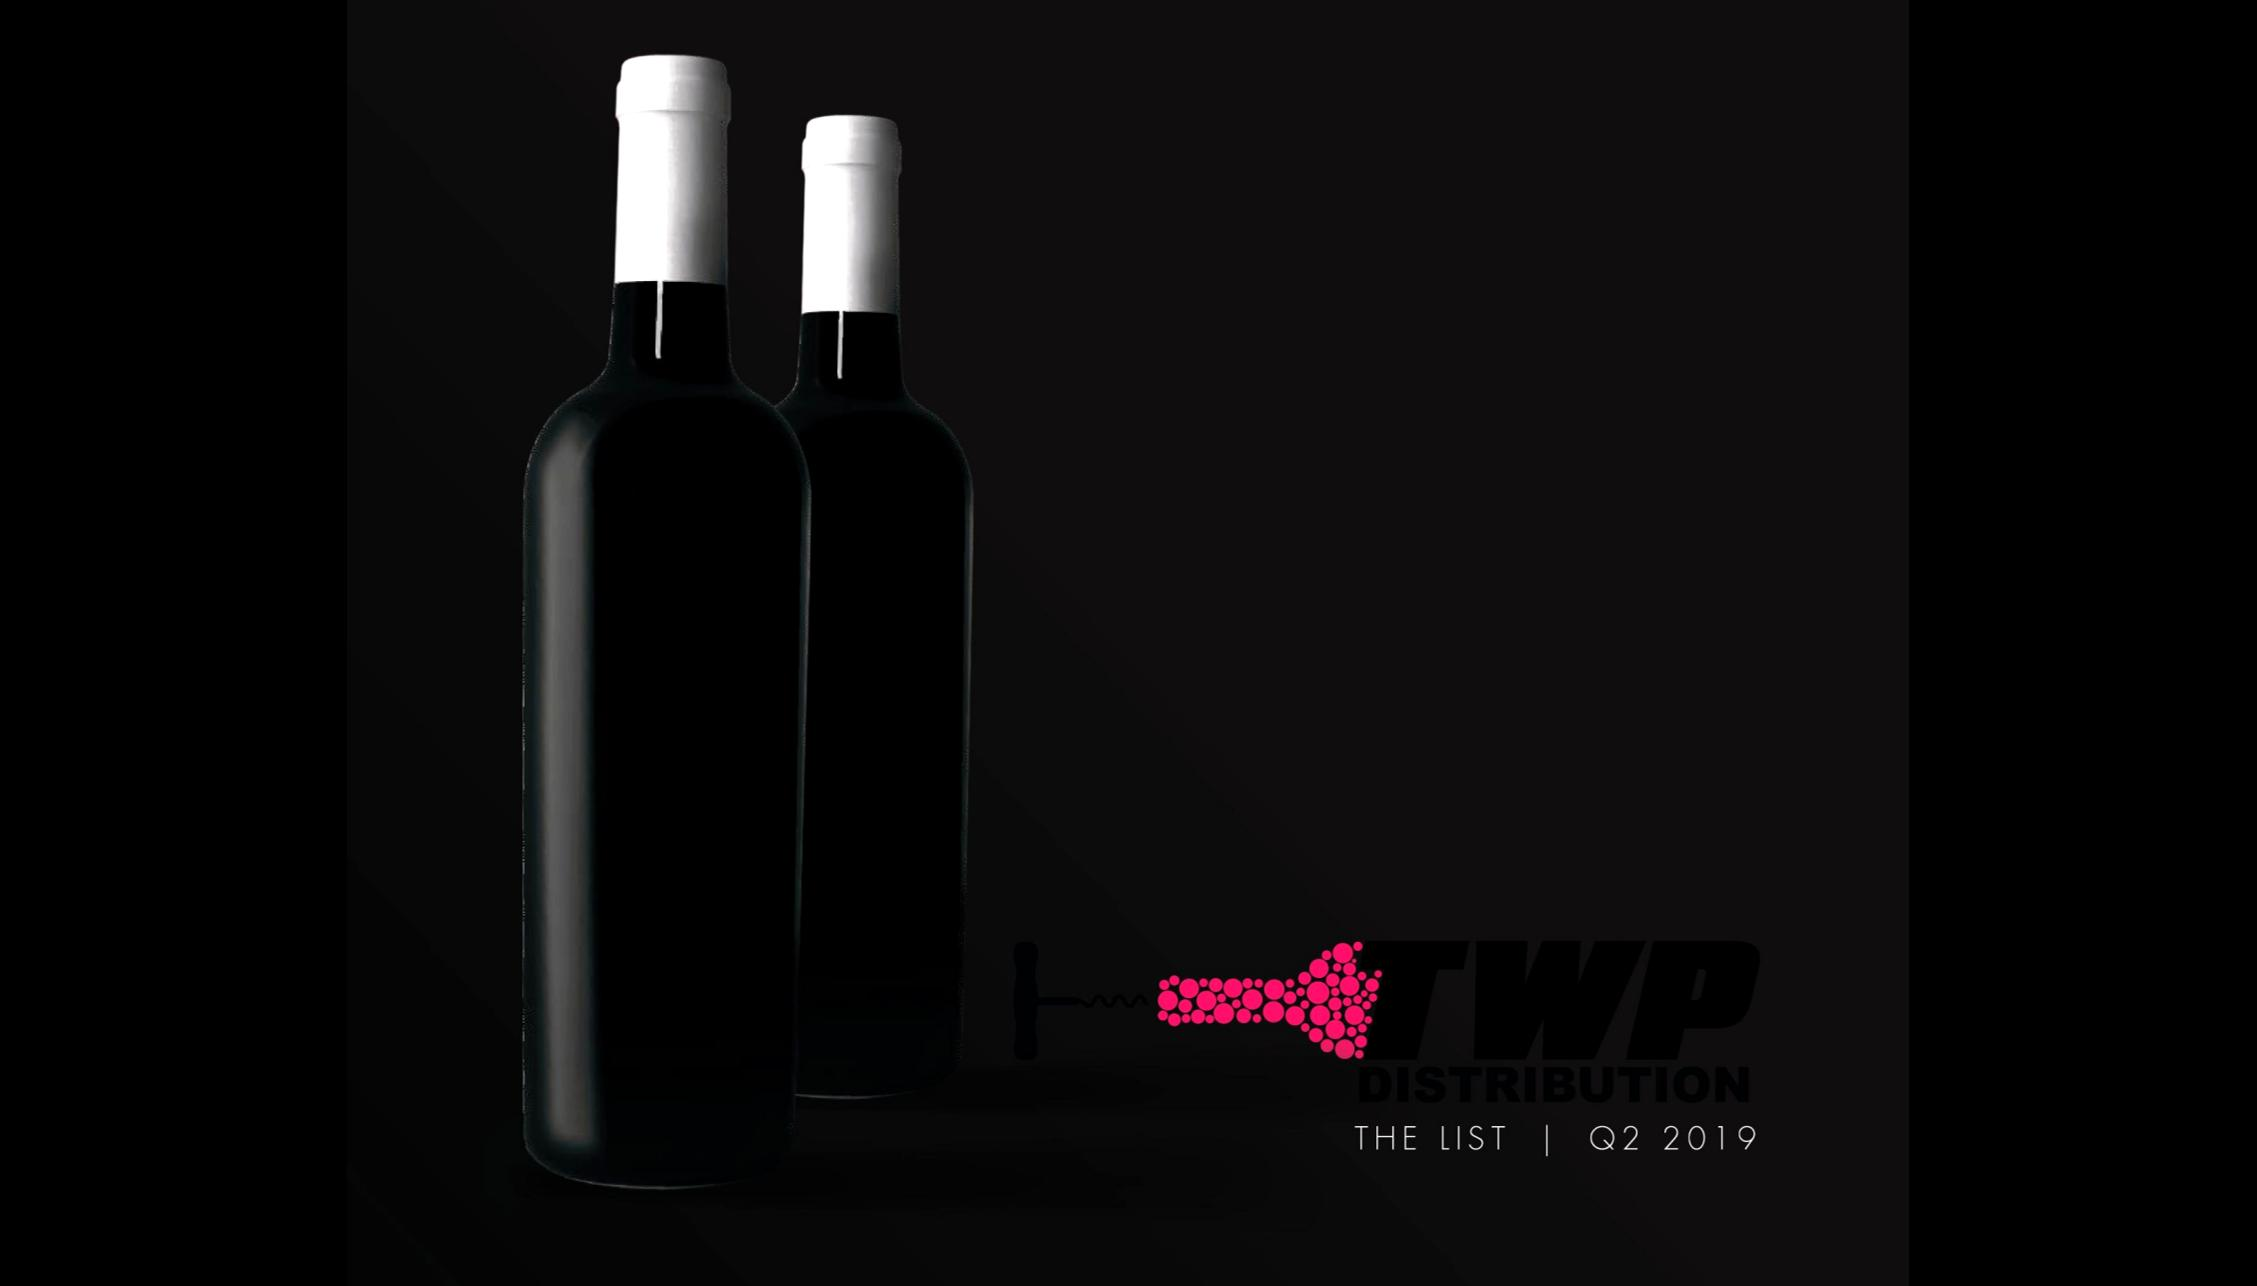 THE WINE POOR DISTRIBUTION 2019 Q2 CATALOG